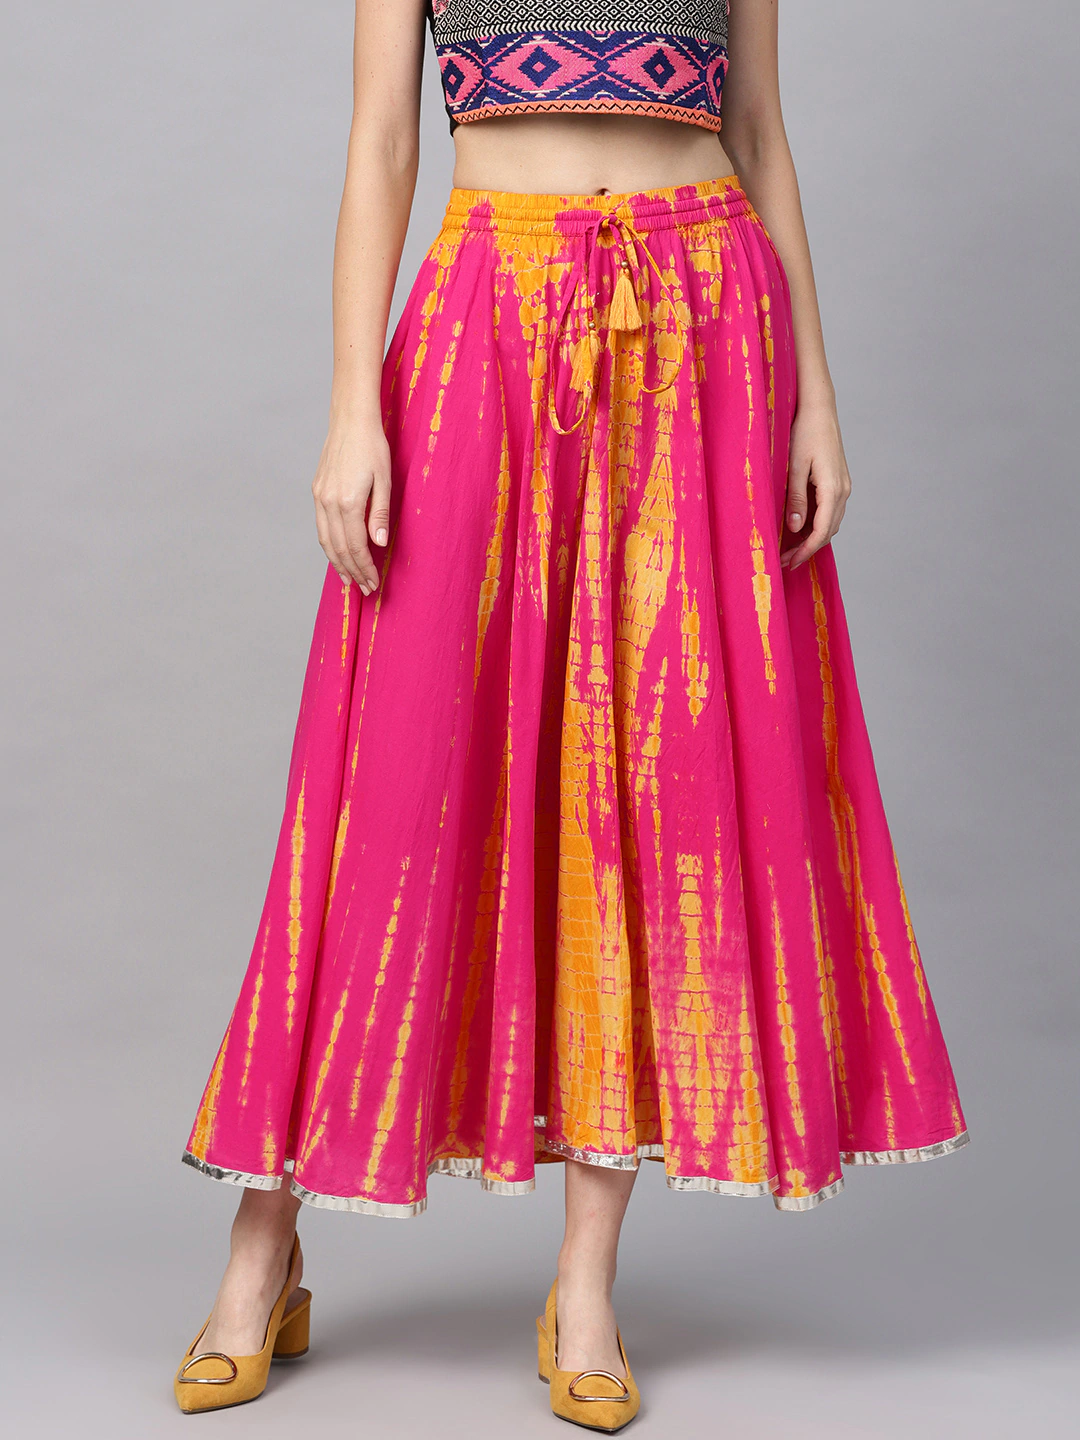 Pink and Yellow Dyed Maxi Flared Skirt